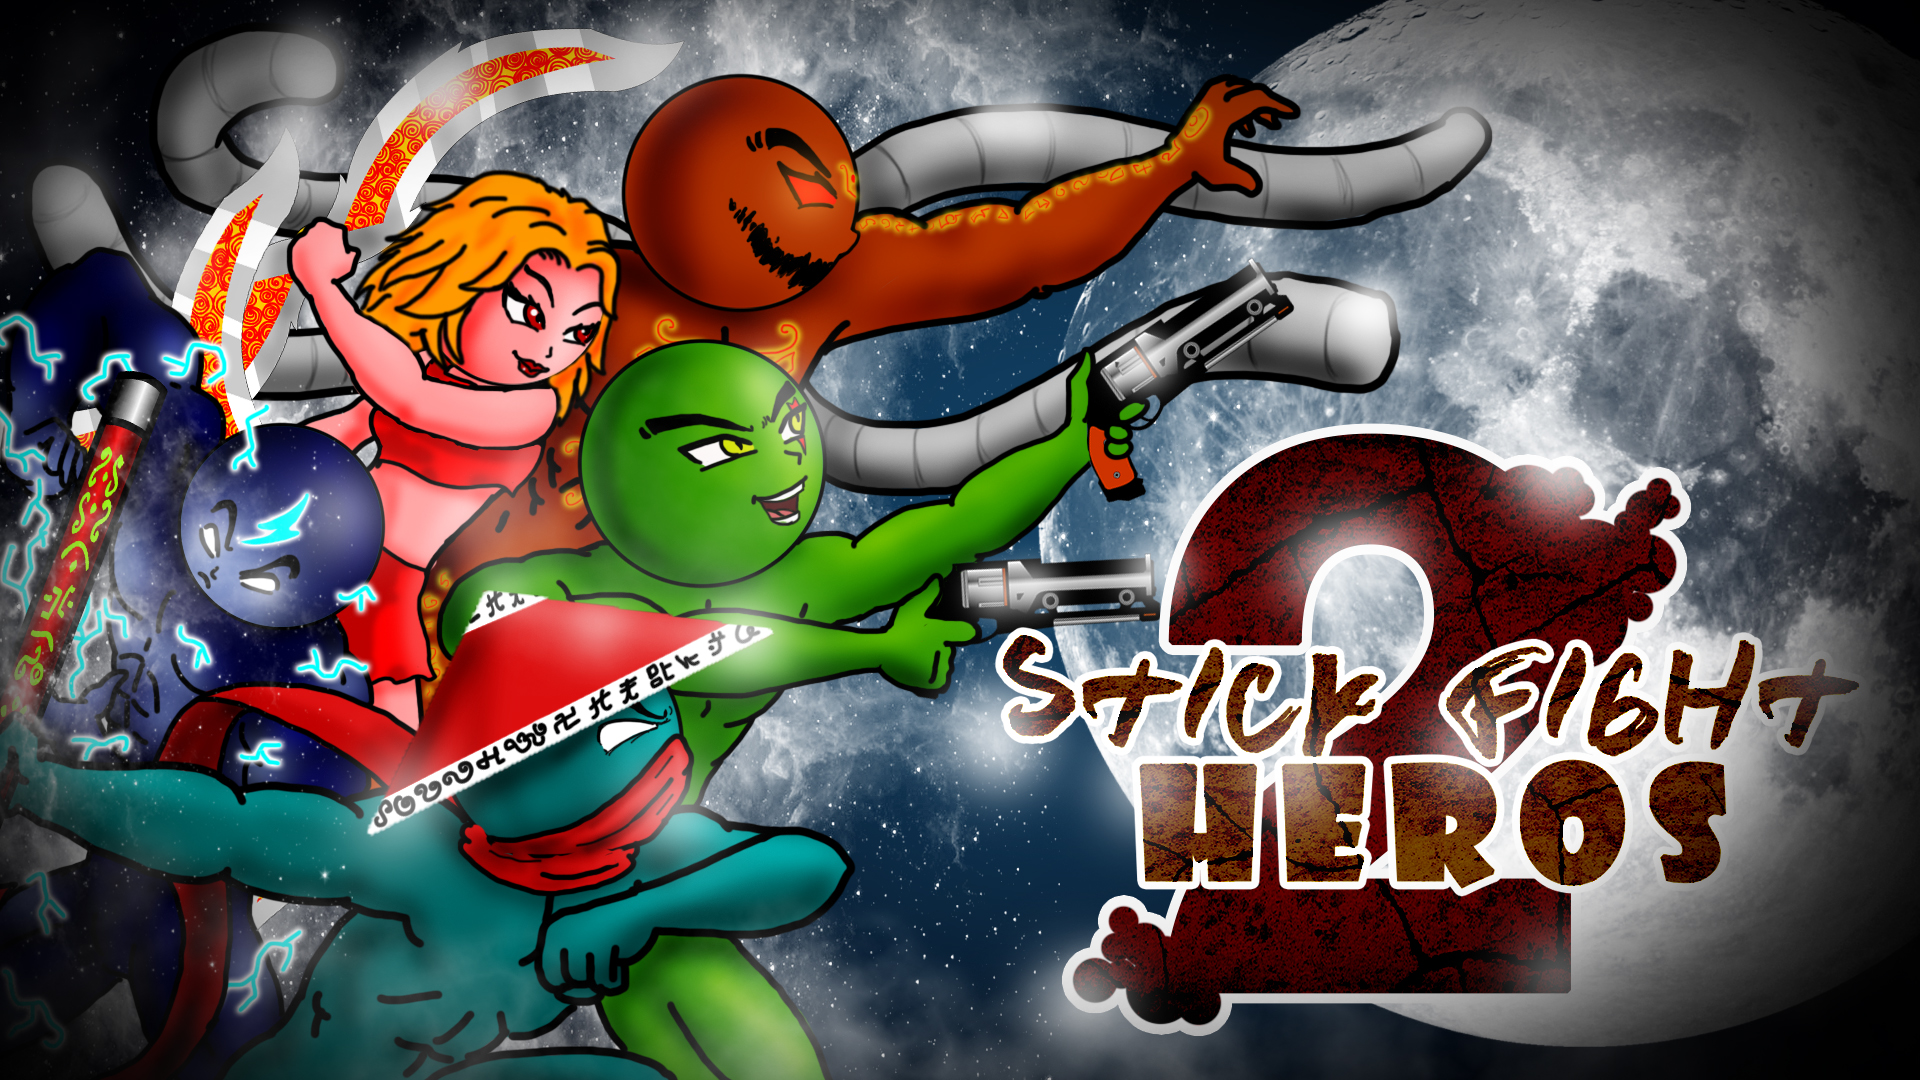 Stick fight heroes 2 poster